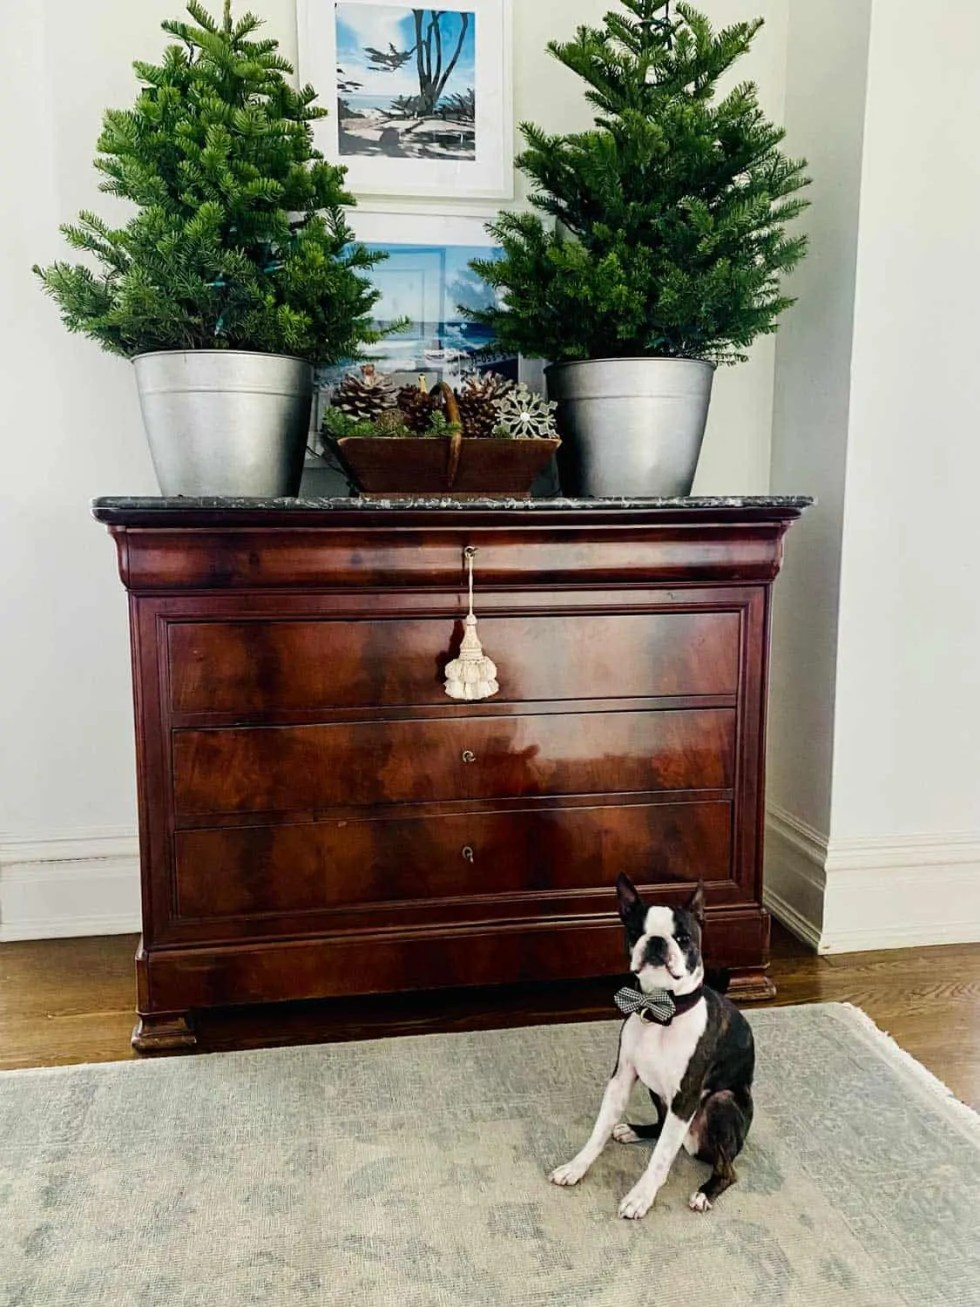 Antique French Dresser with Two Christmas Trees in Foyer